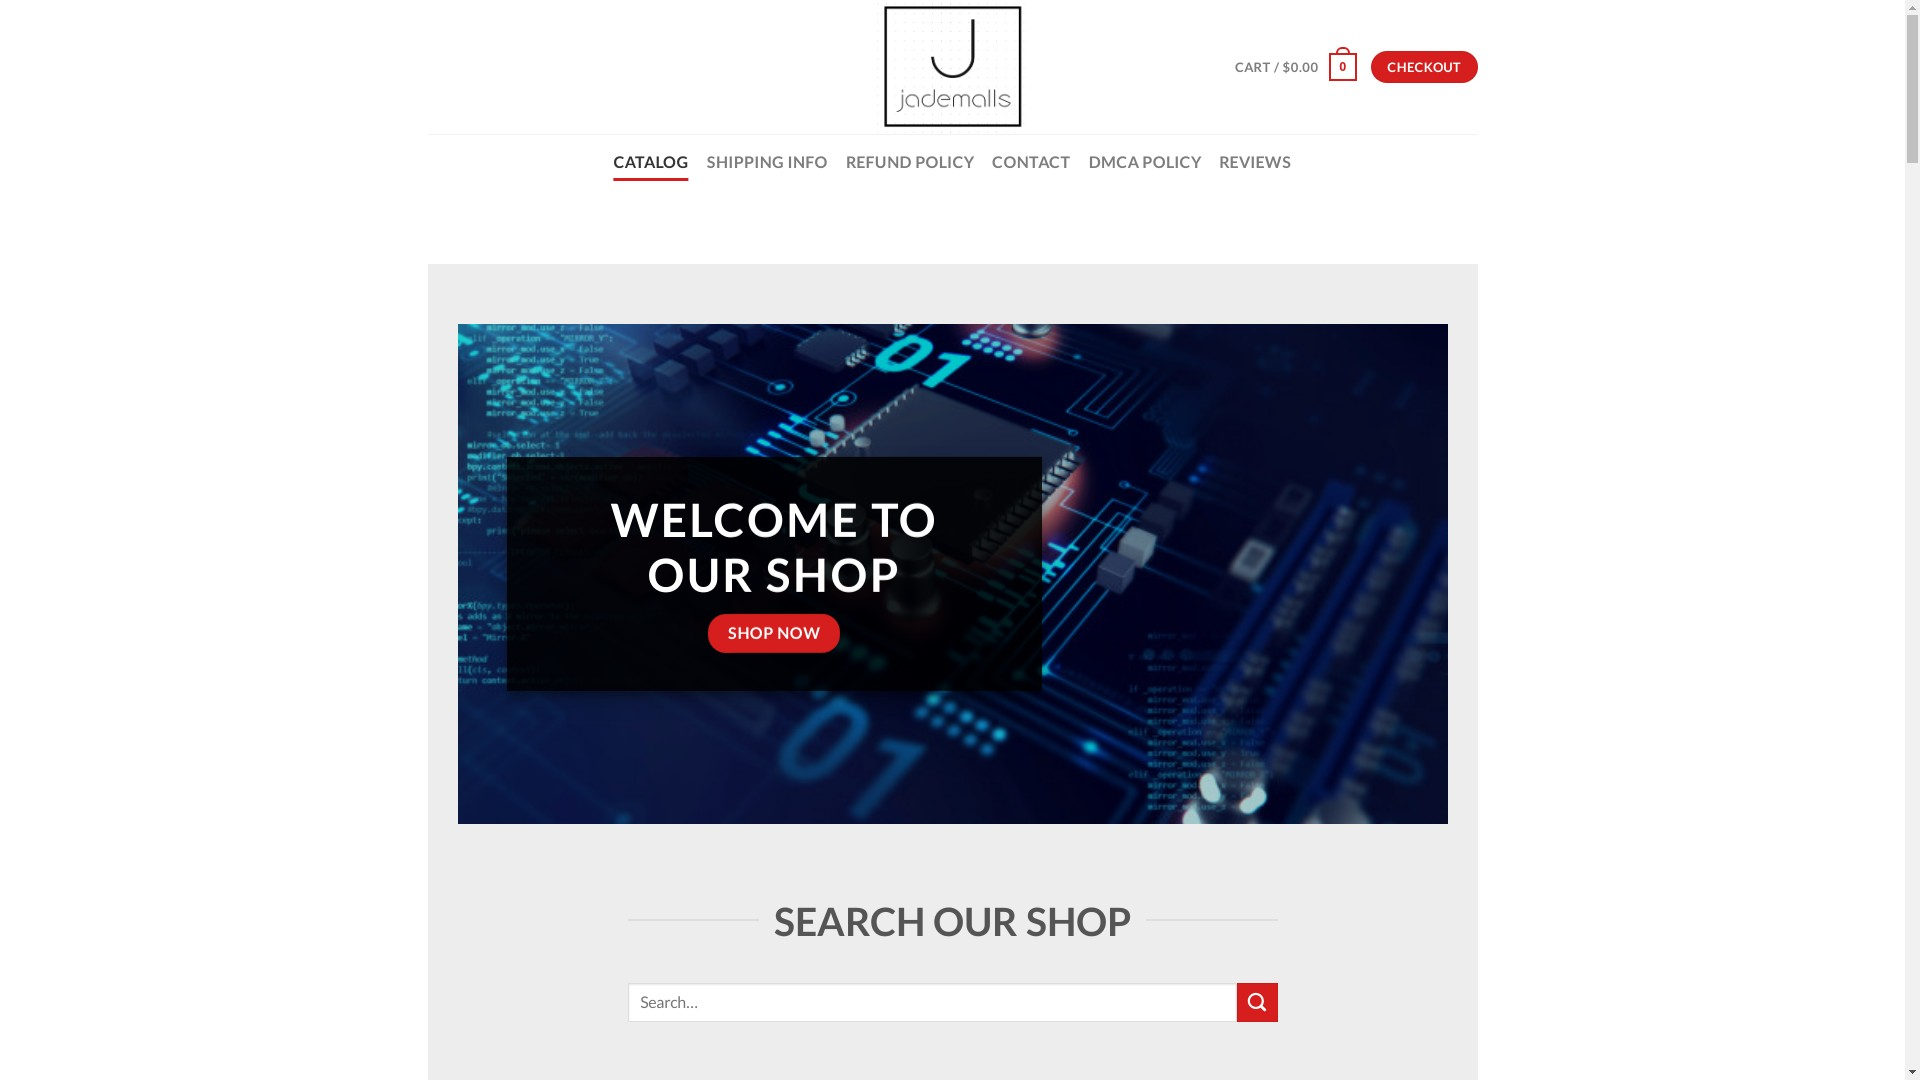 Is Jademalls a Scam or is it Legit? Review of the Online Store